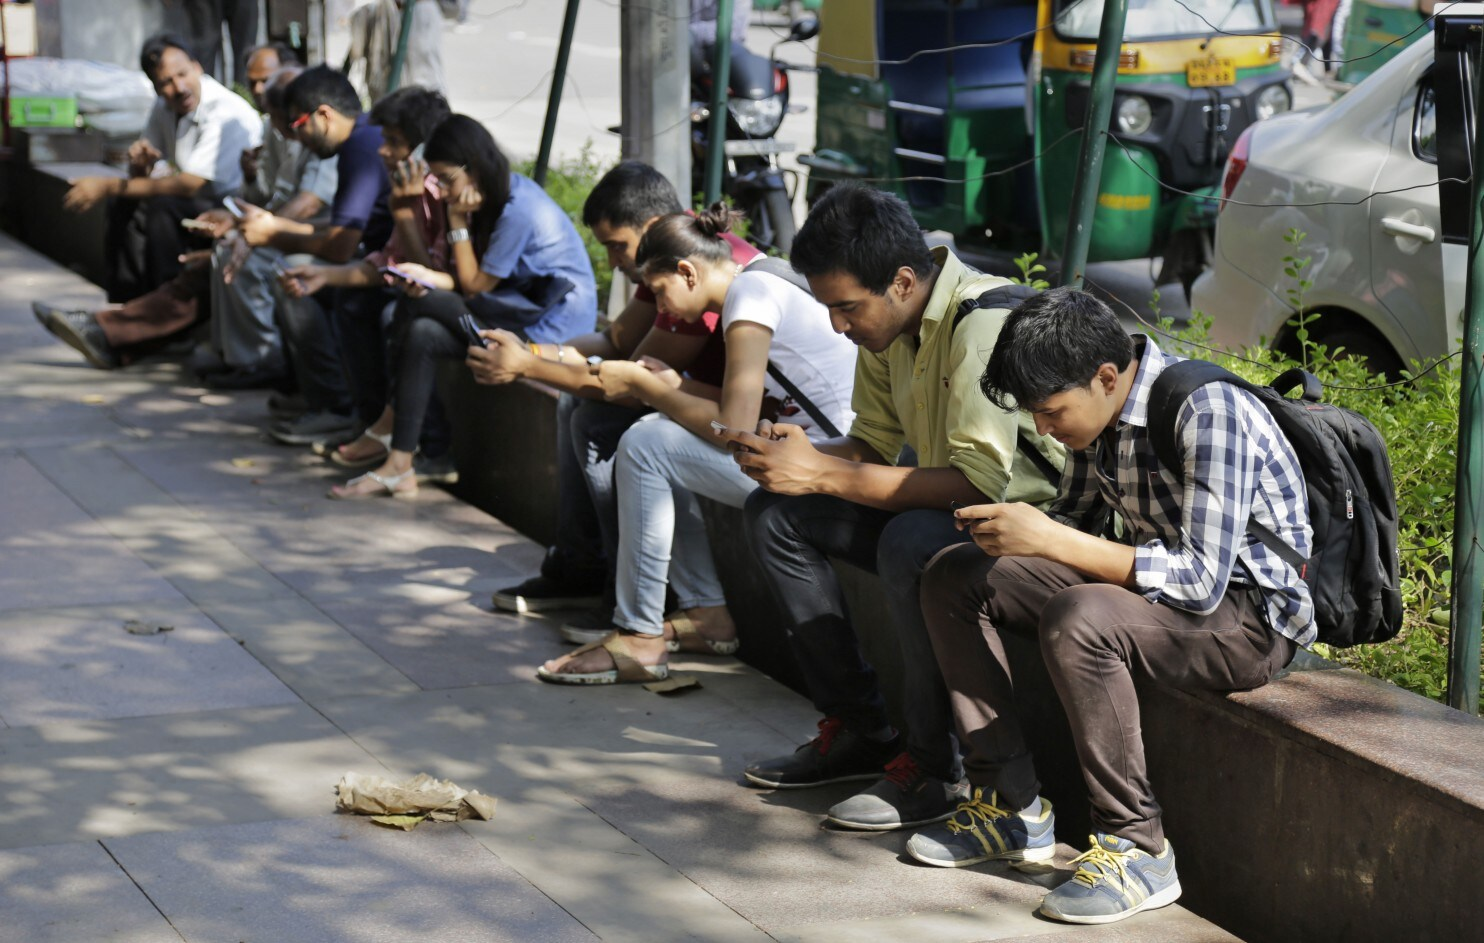 Young adults sitting on a bench on the road in India looking down at their smartphones